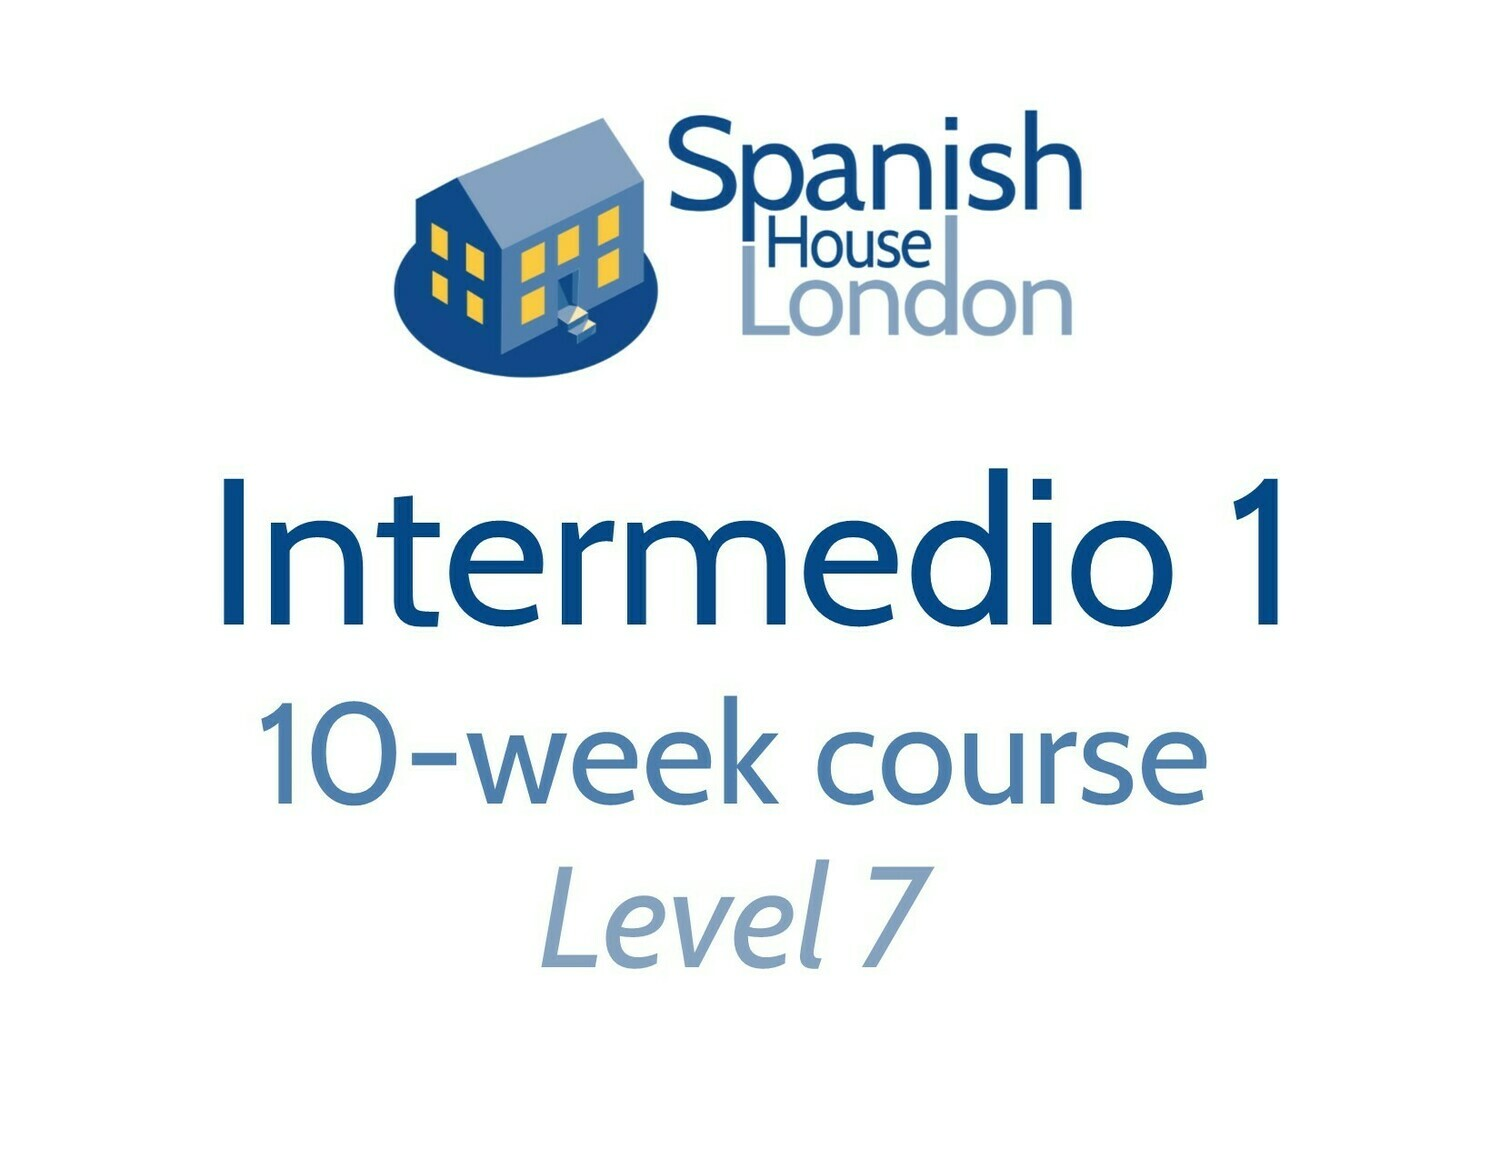 Intermedio 1 Course starting on 10th August at 6pm